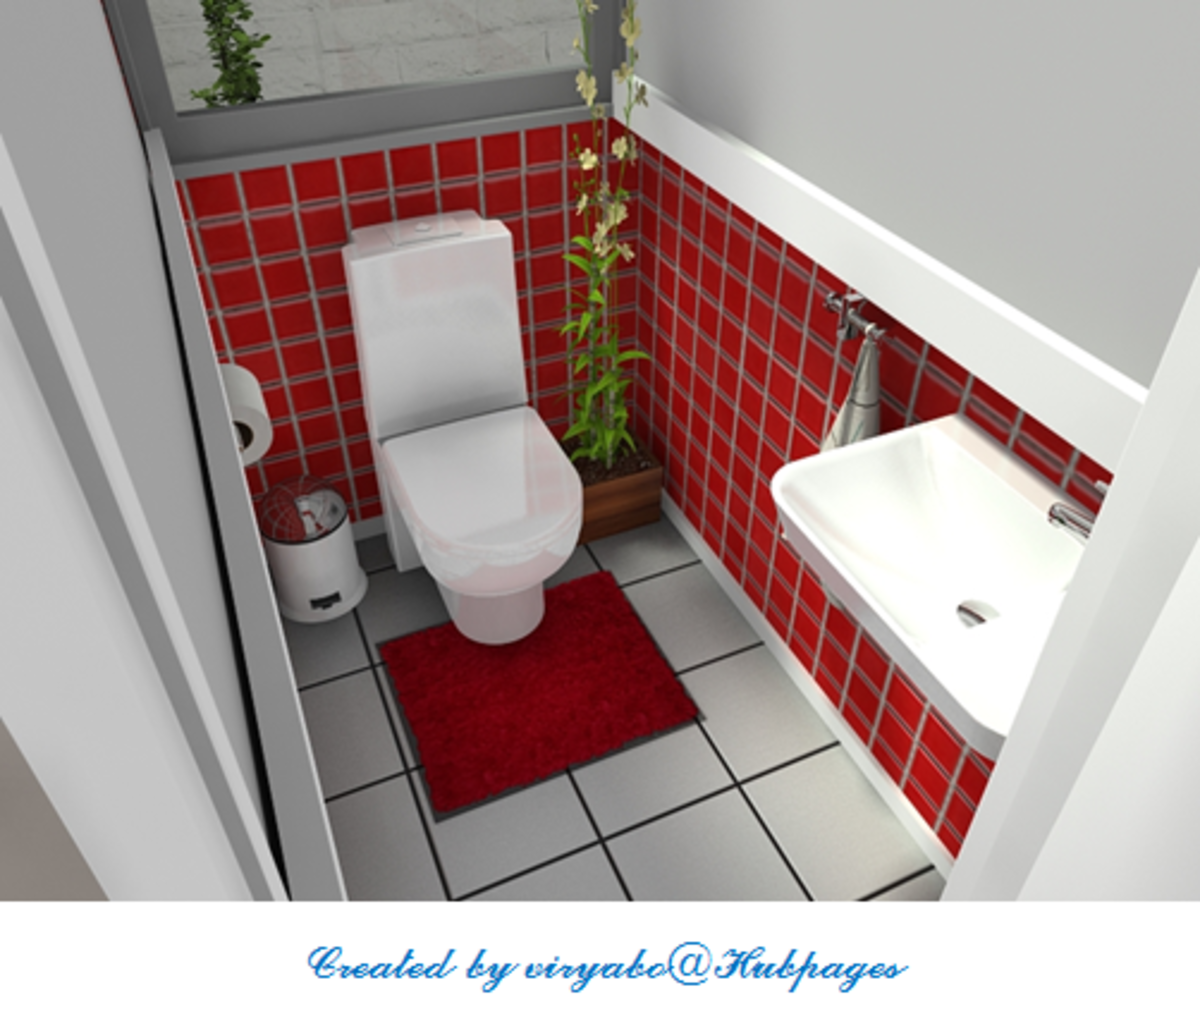 This guest bathroom design is produced with Room Sketcher computer-aided design software.